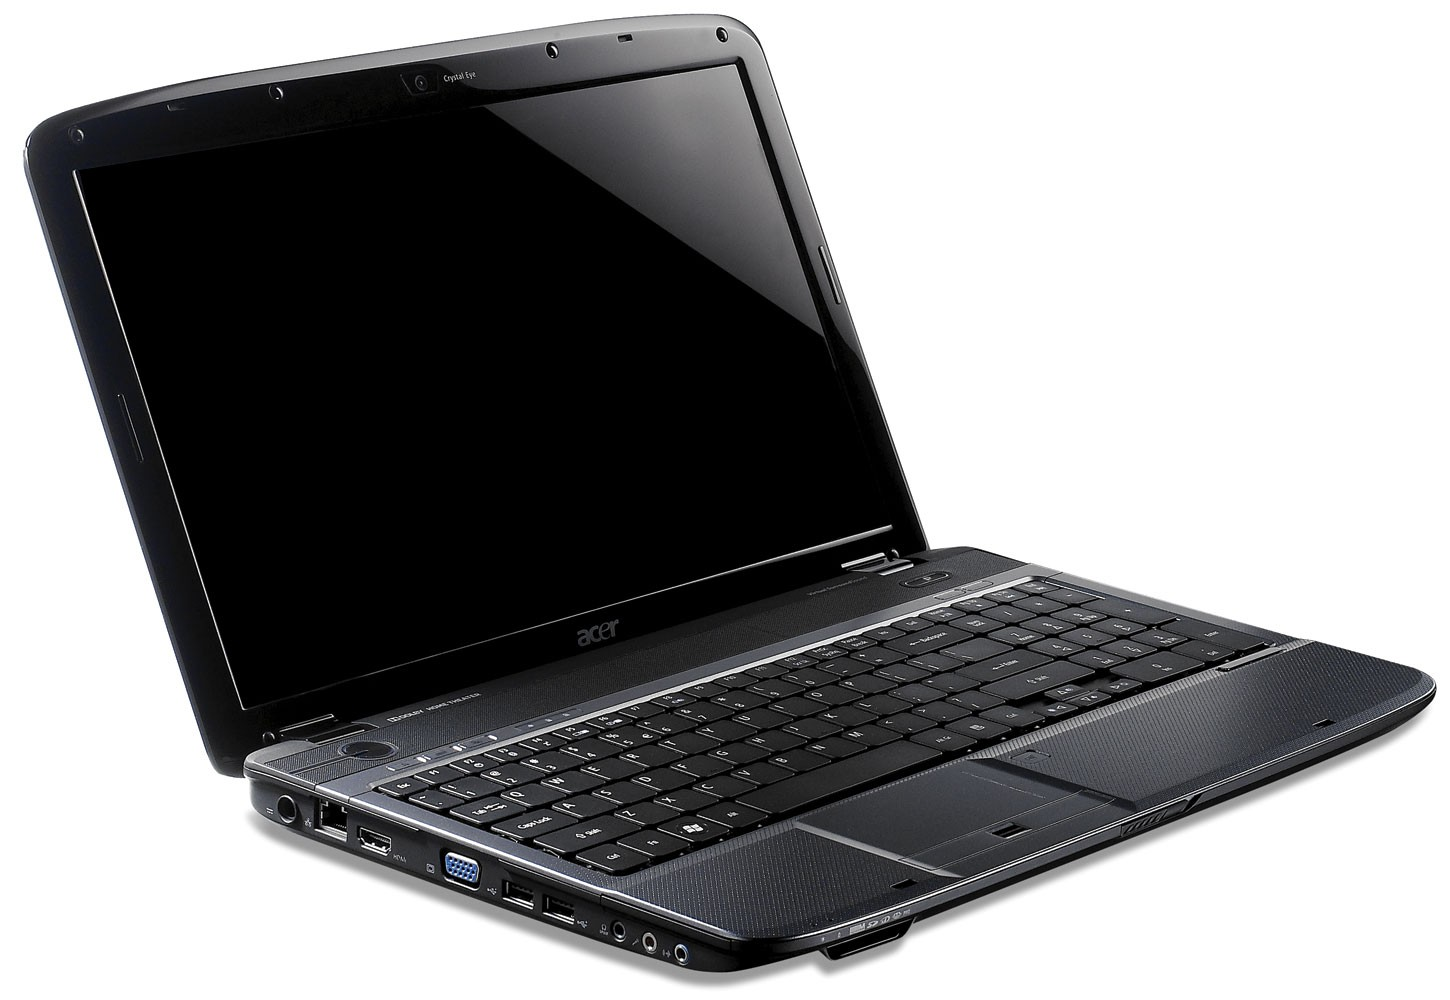 ACER AS5738G WINDOWS 8 DRIVER